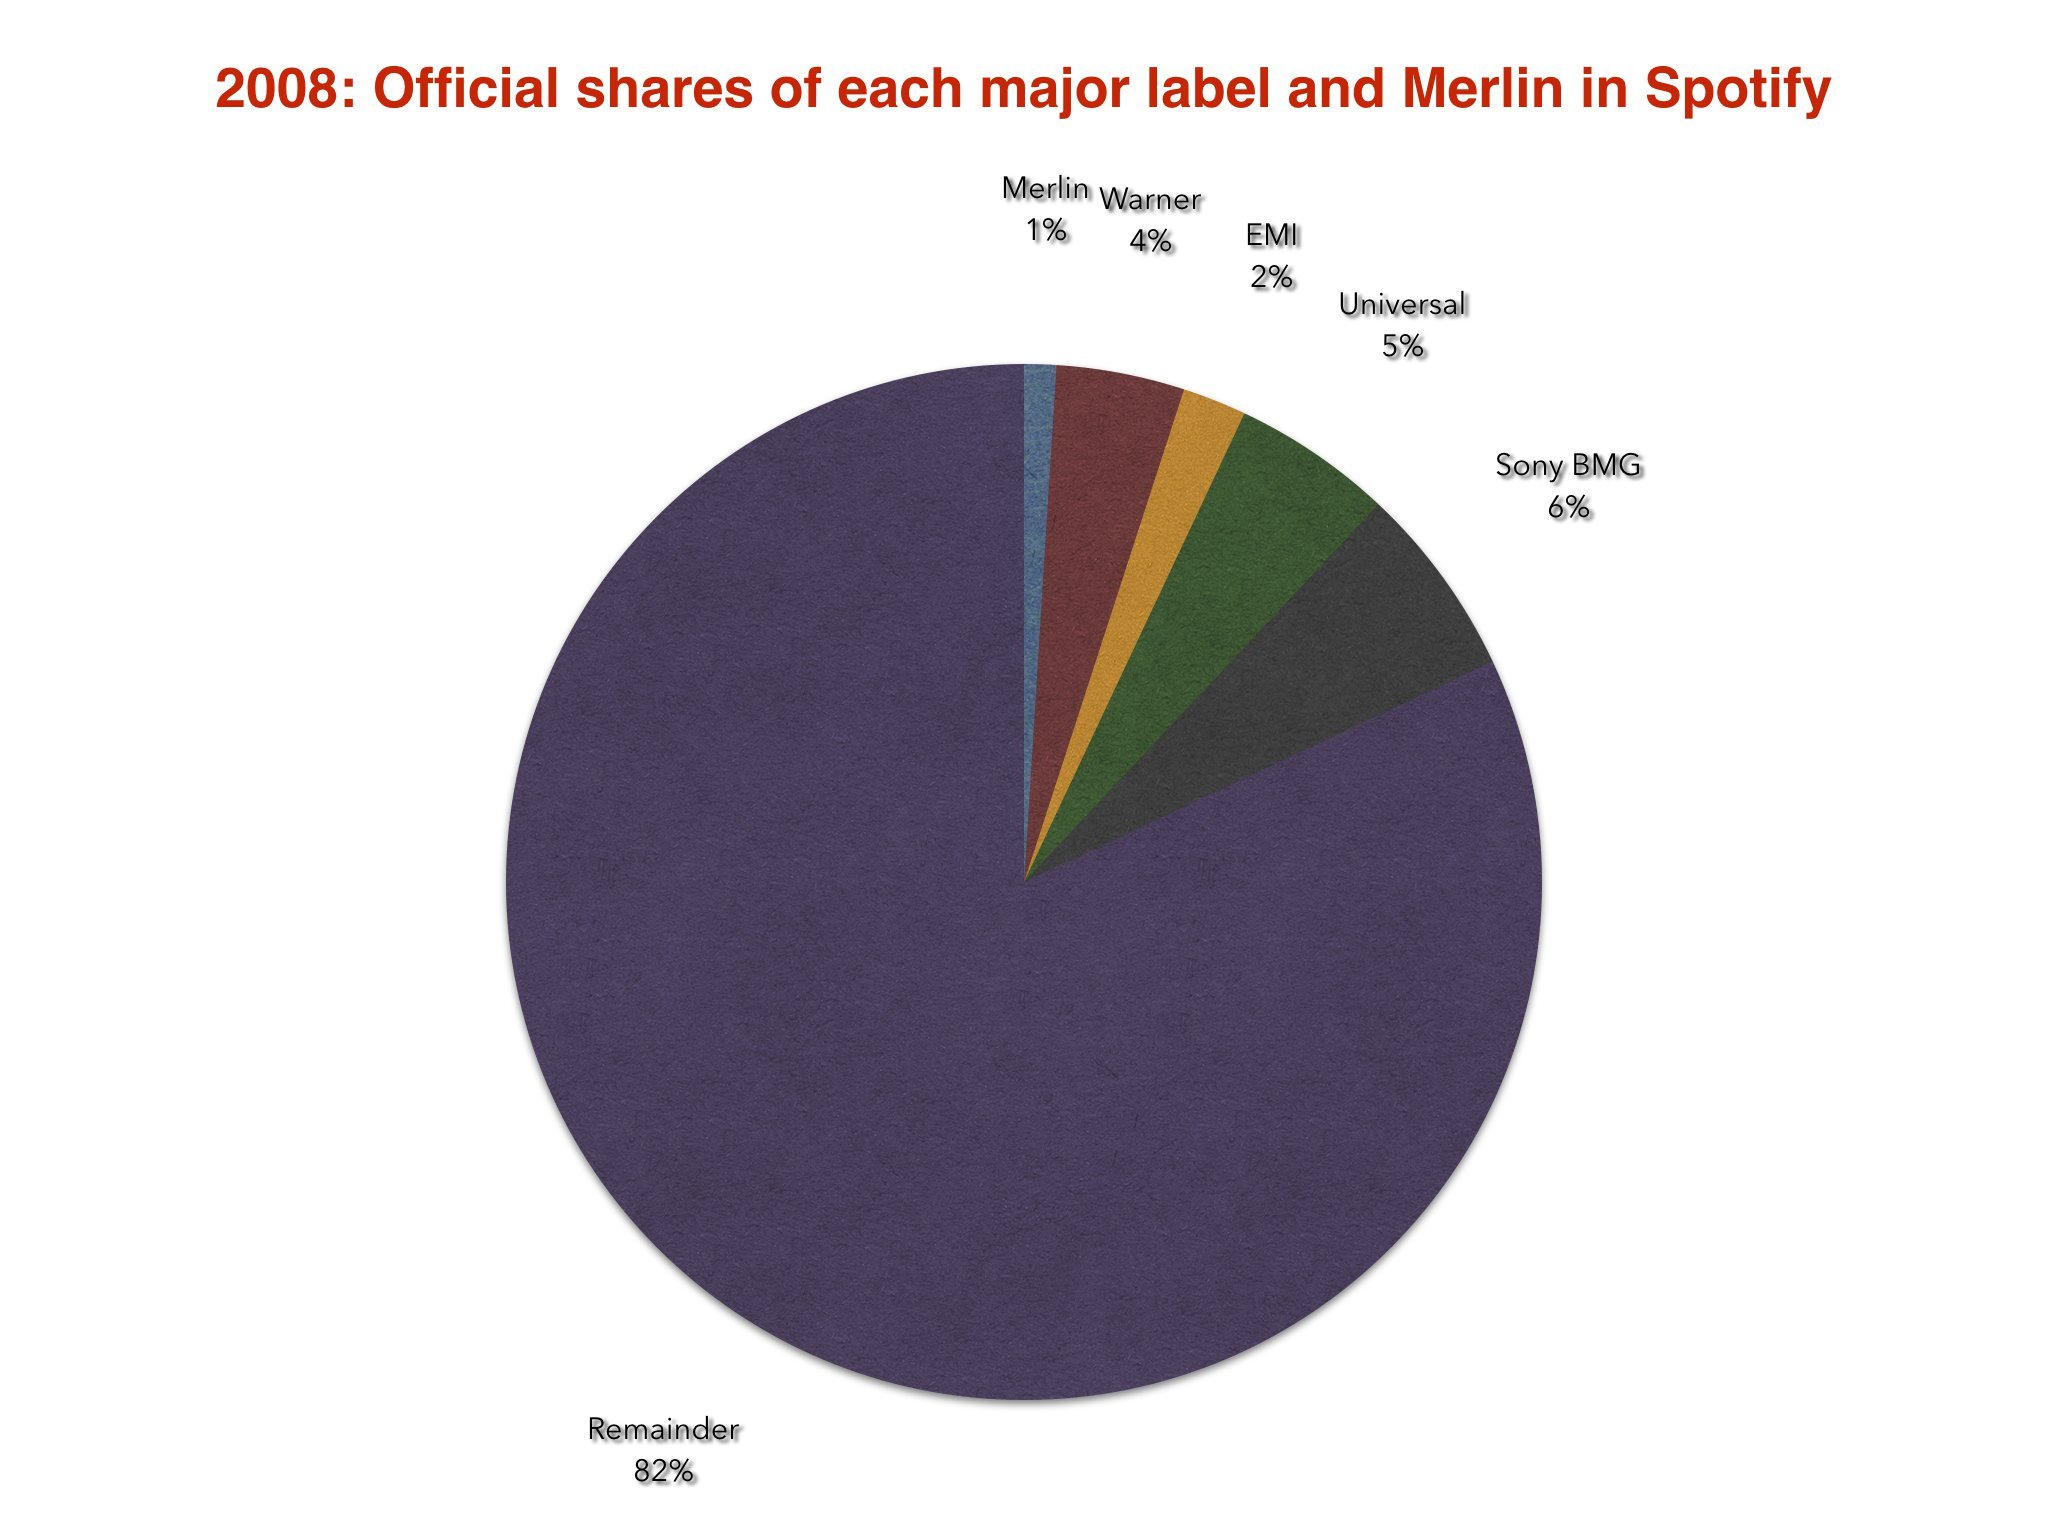 One reason why Spotify's deals with the major labels are balanced on